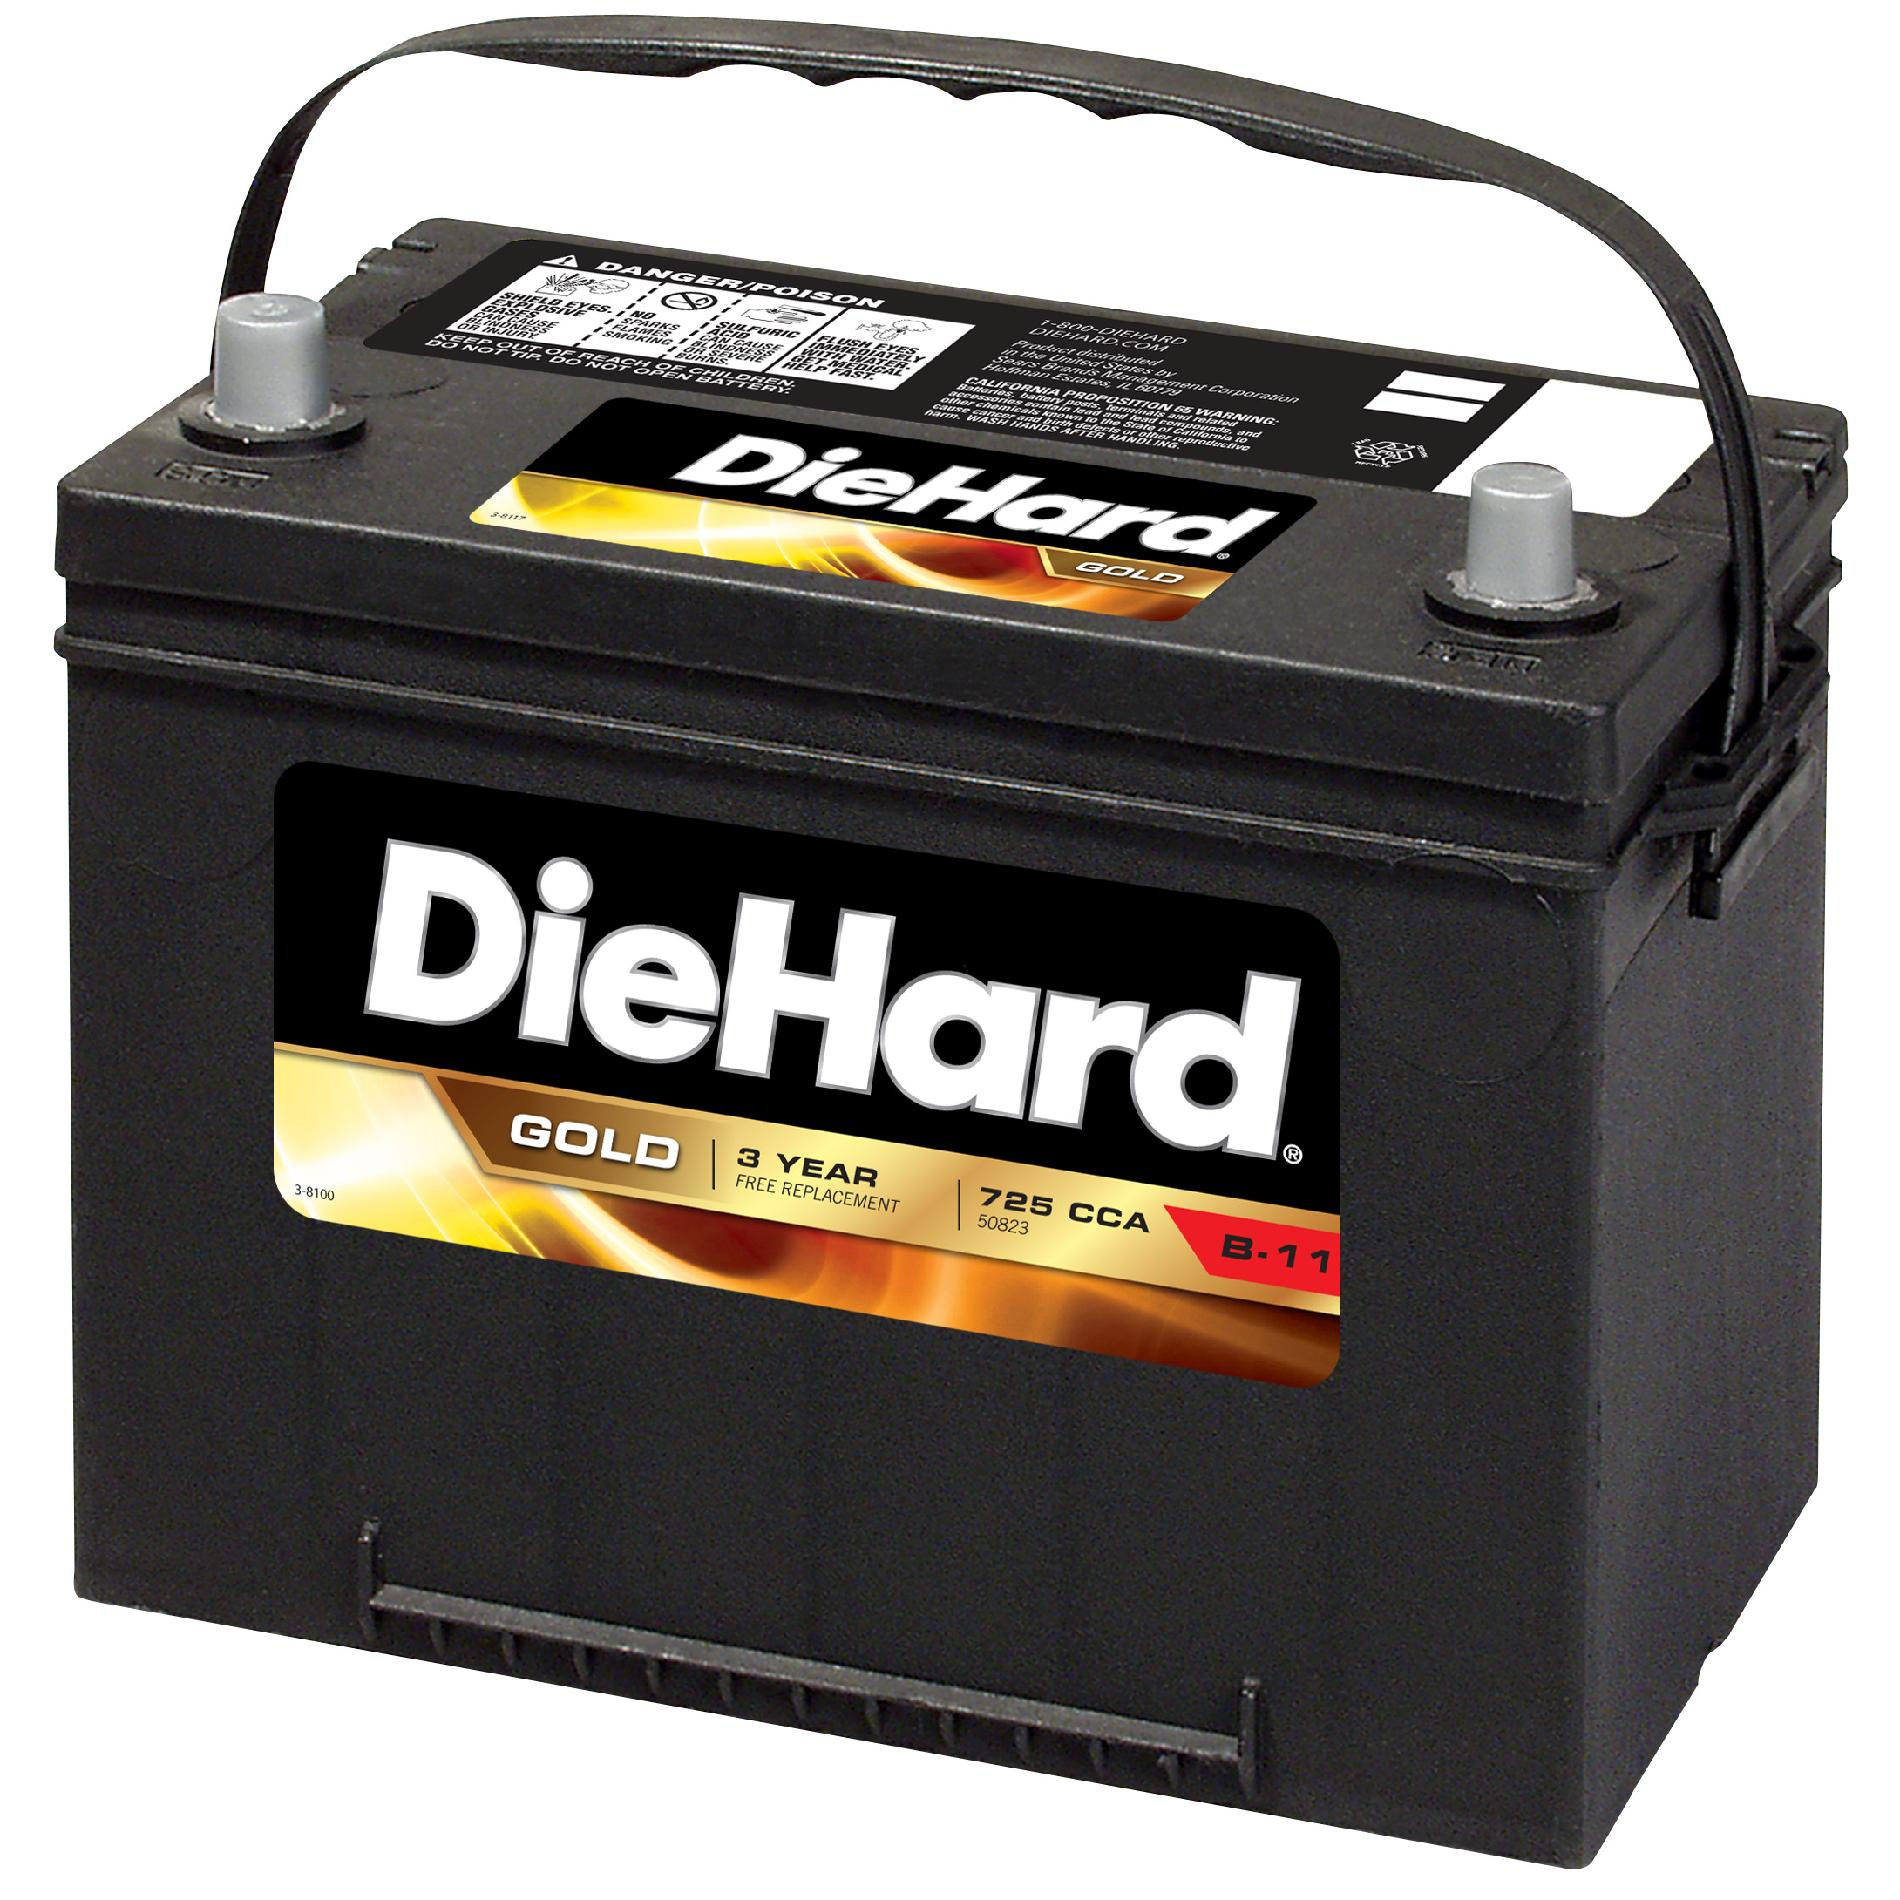 medium resolution of diehard gold automotive battery group size ep 24f price with exchange